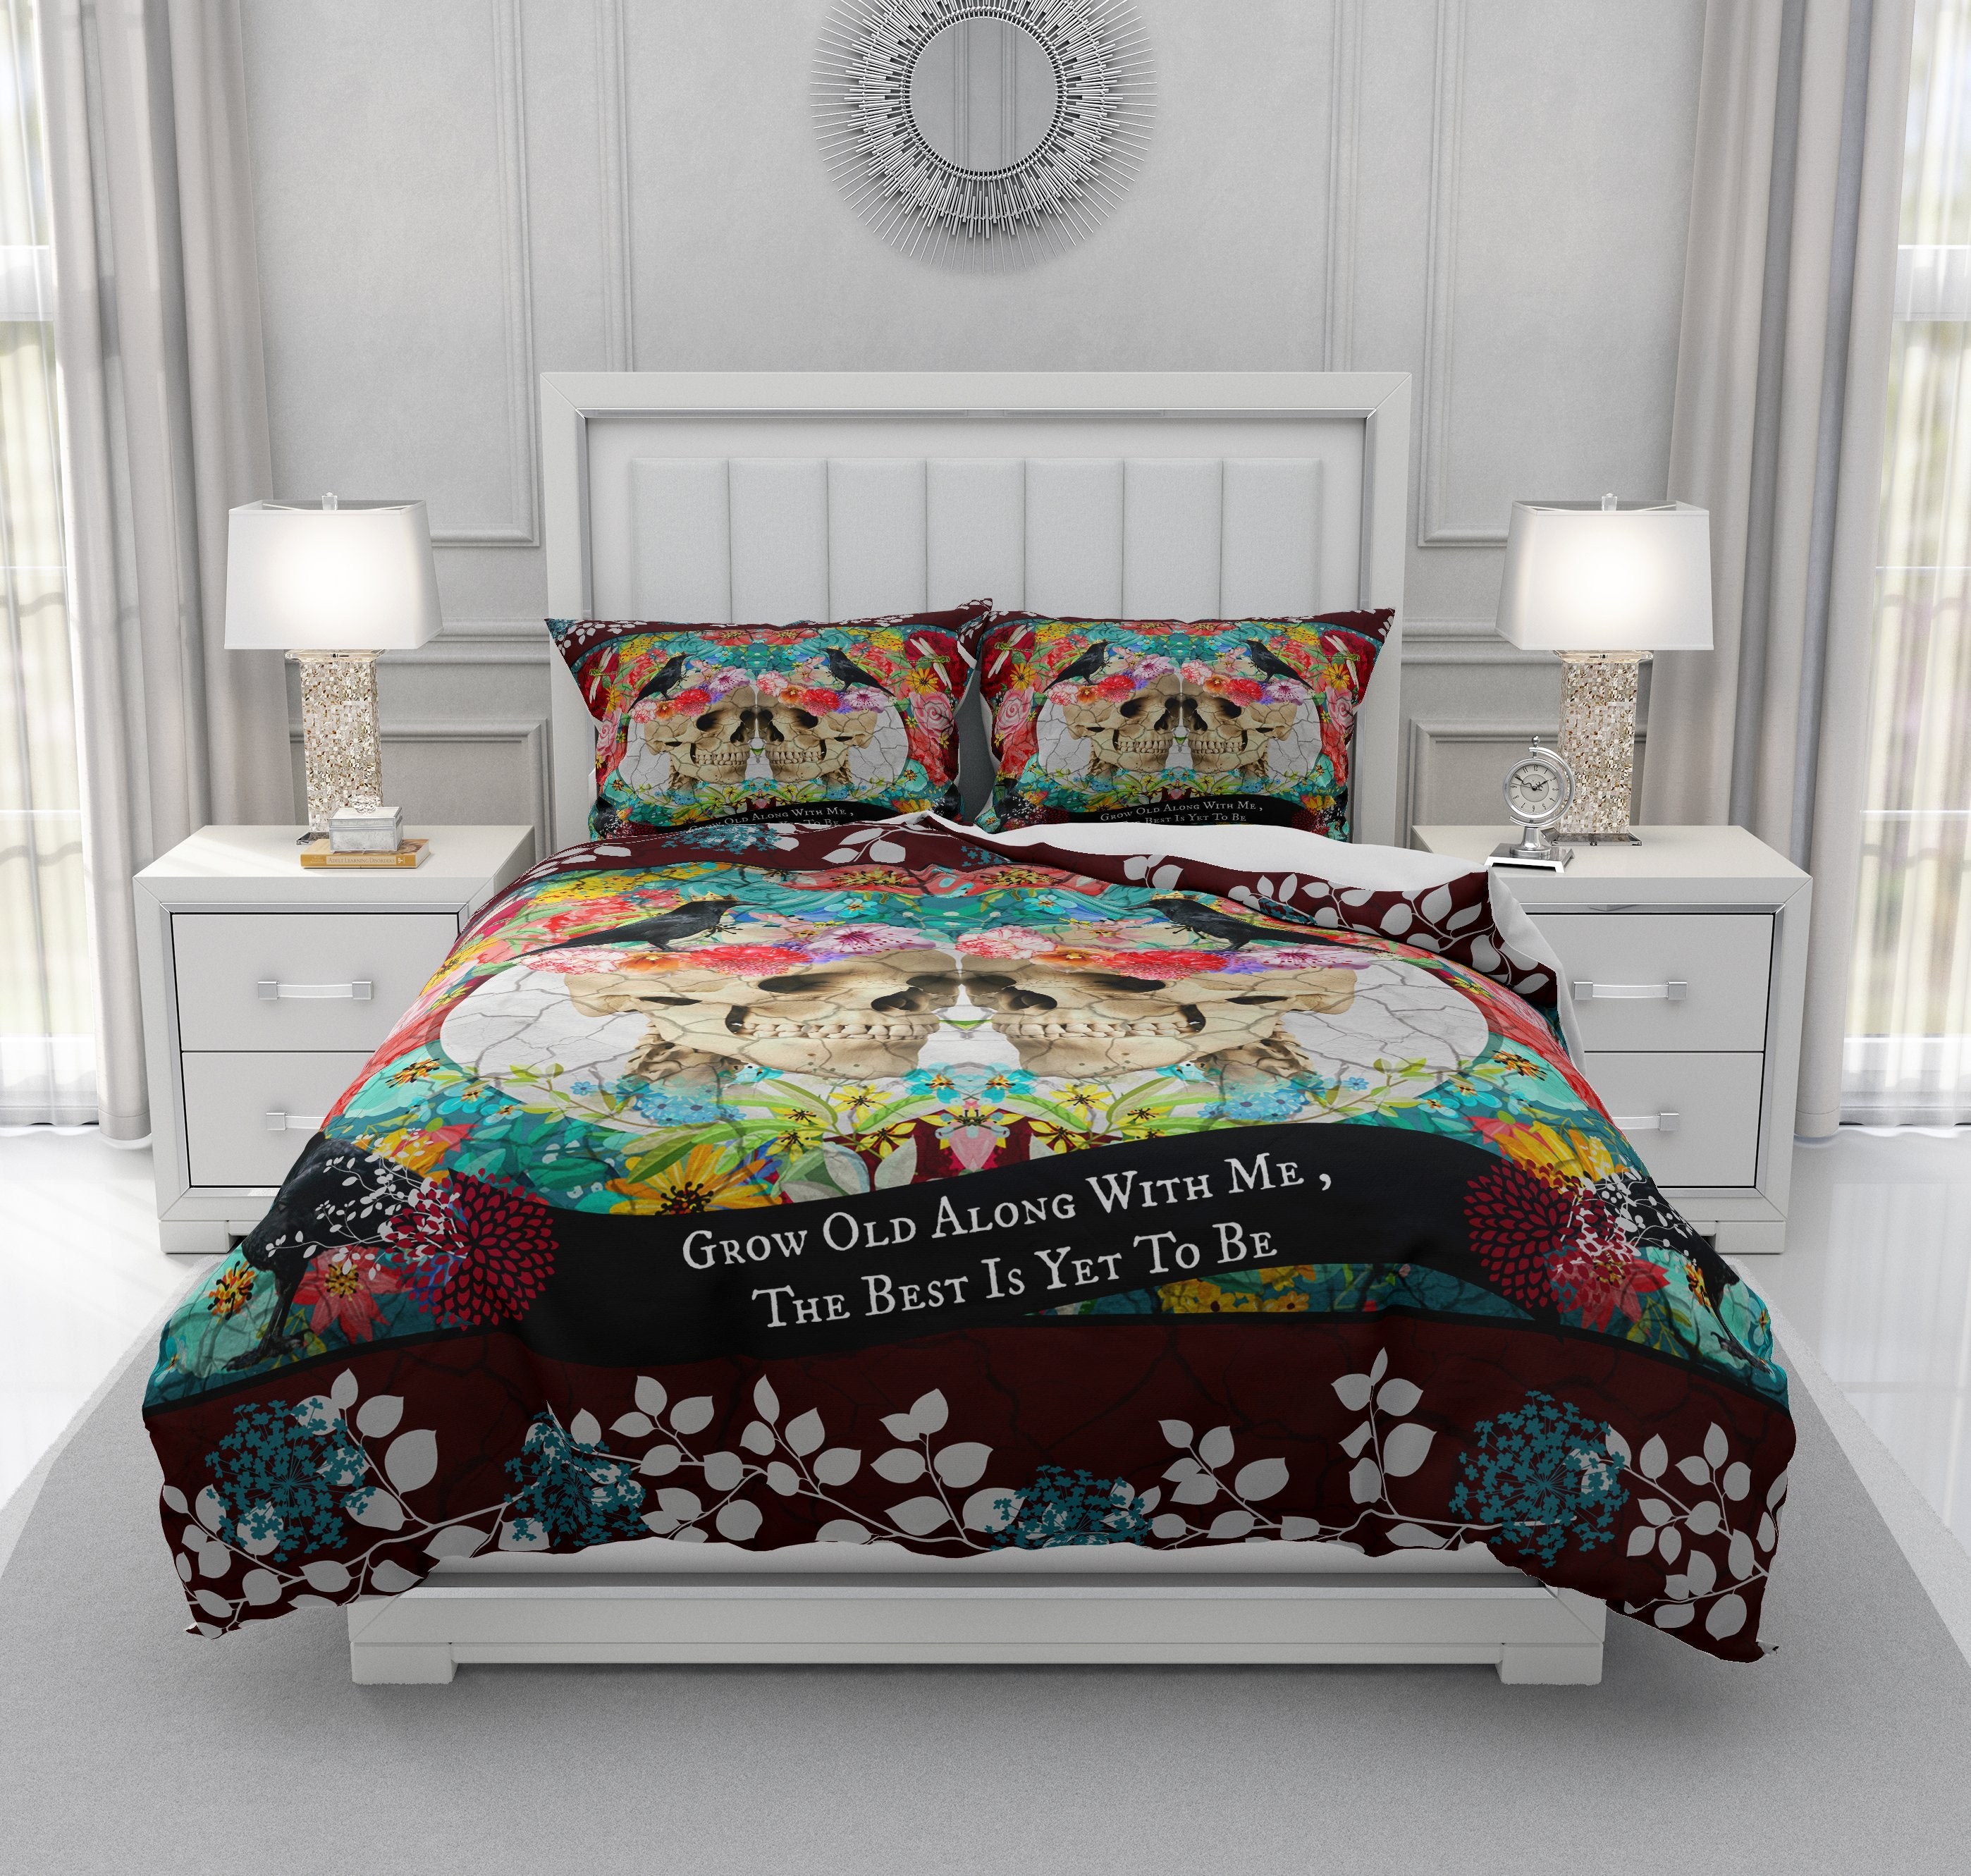 Grow Old With Me Couple Gothic Skull Bedding